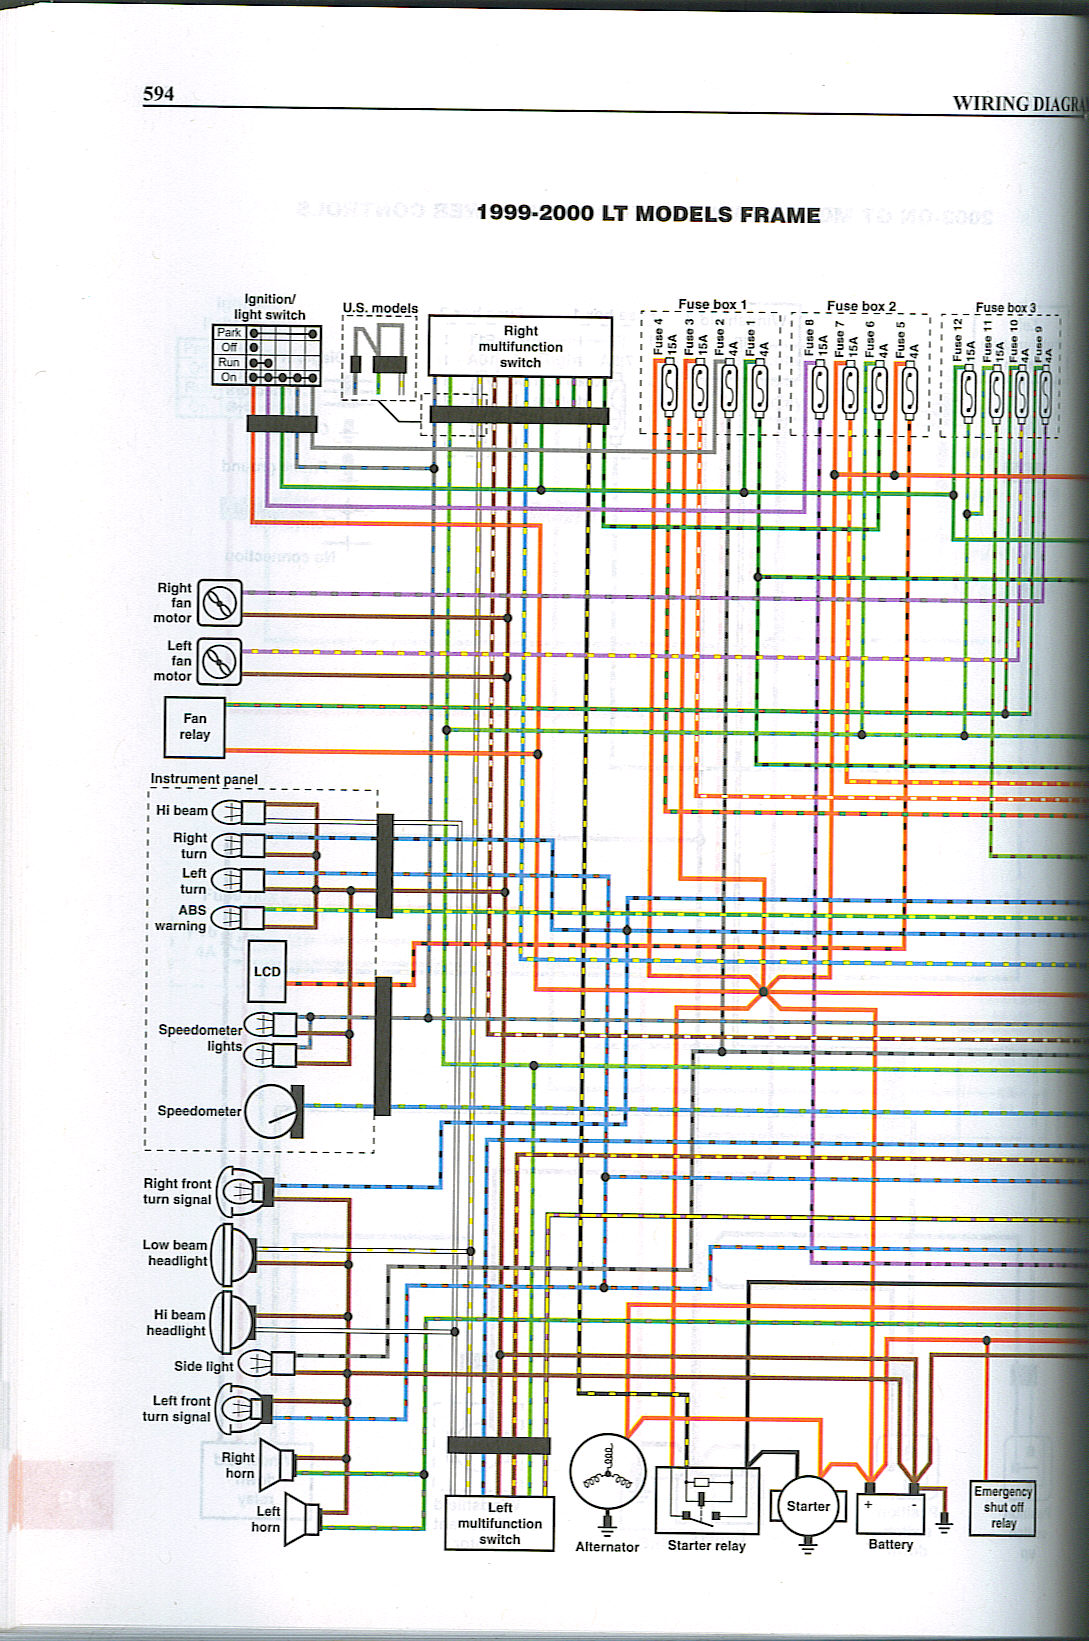 hight resolution of wiring diagram bmw k1200lt wiring diagram inside k1200lt wiring diagram wiring diagram for you wiring diagram